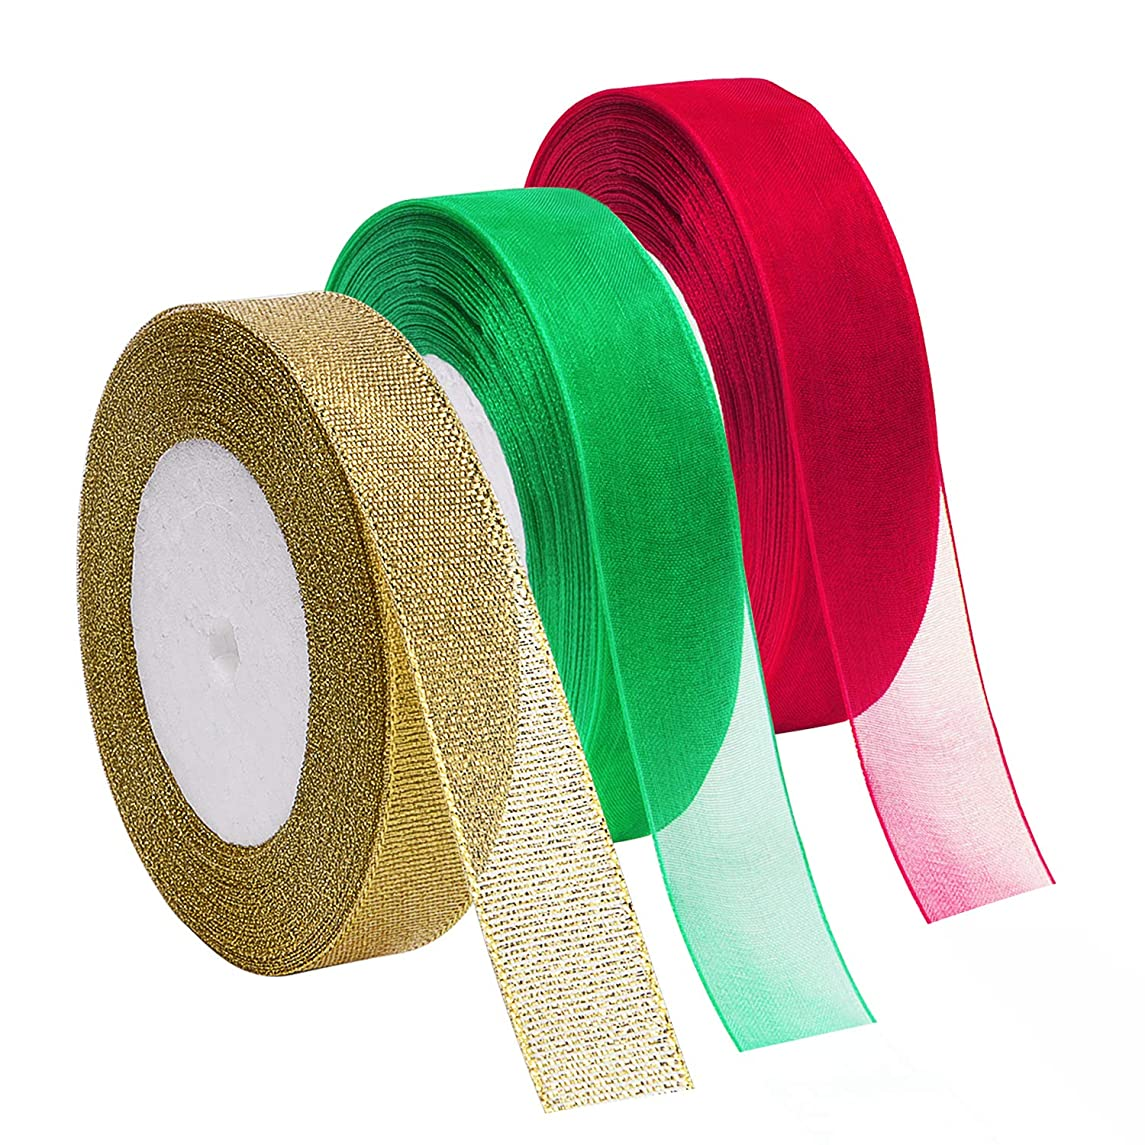 Livder 3 Rolls 125 Yard Christmas Organza Glitter Ribbons for Gift Wrapping, Christmas Tree Room Decoration